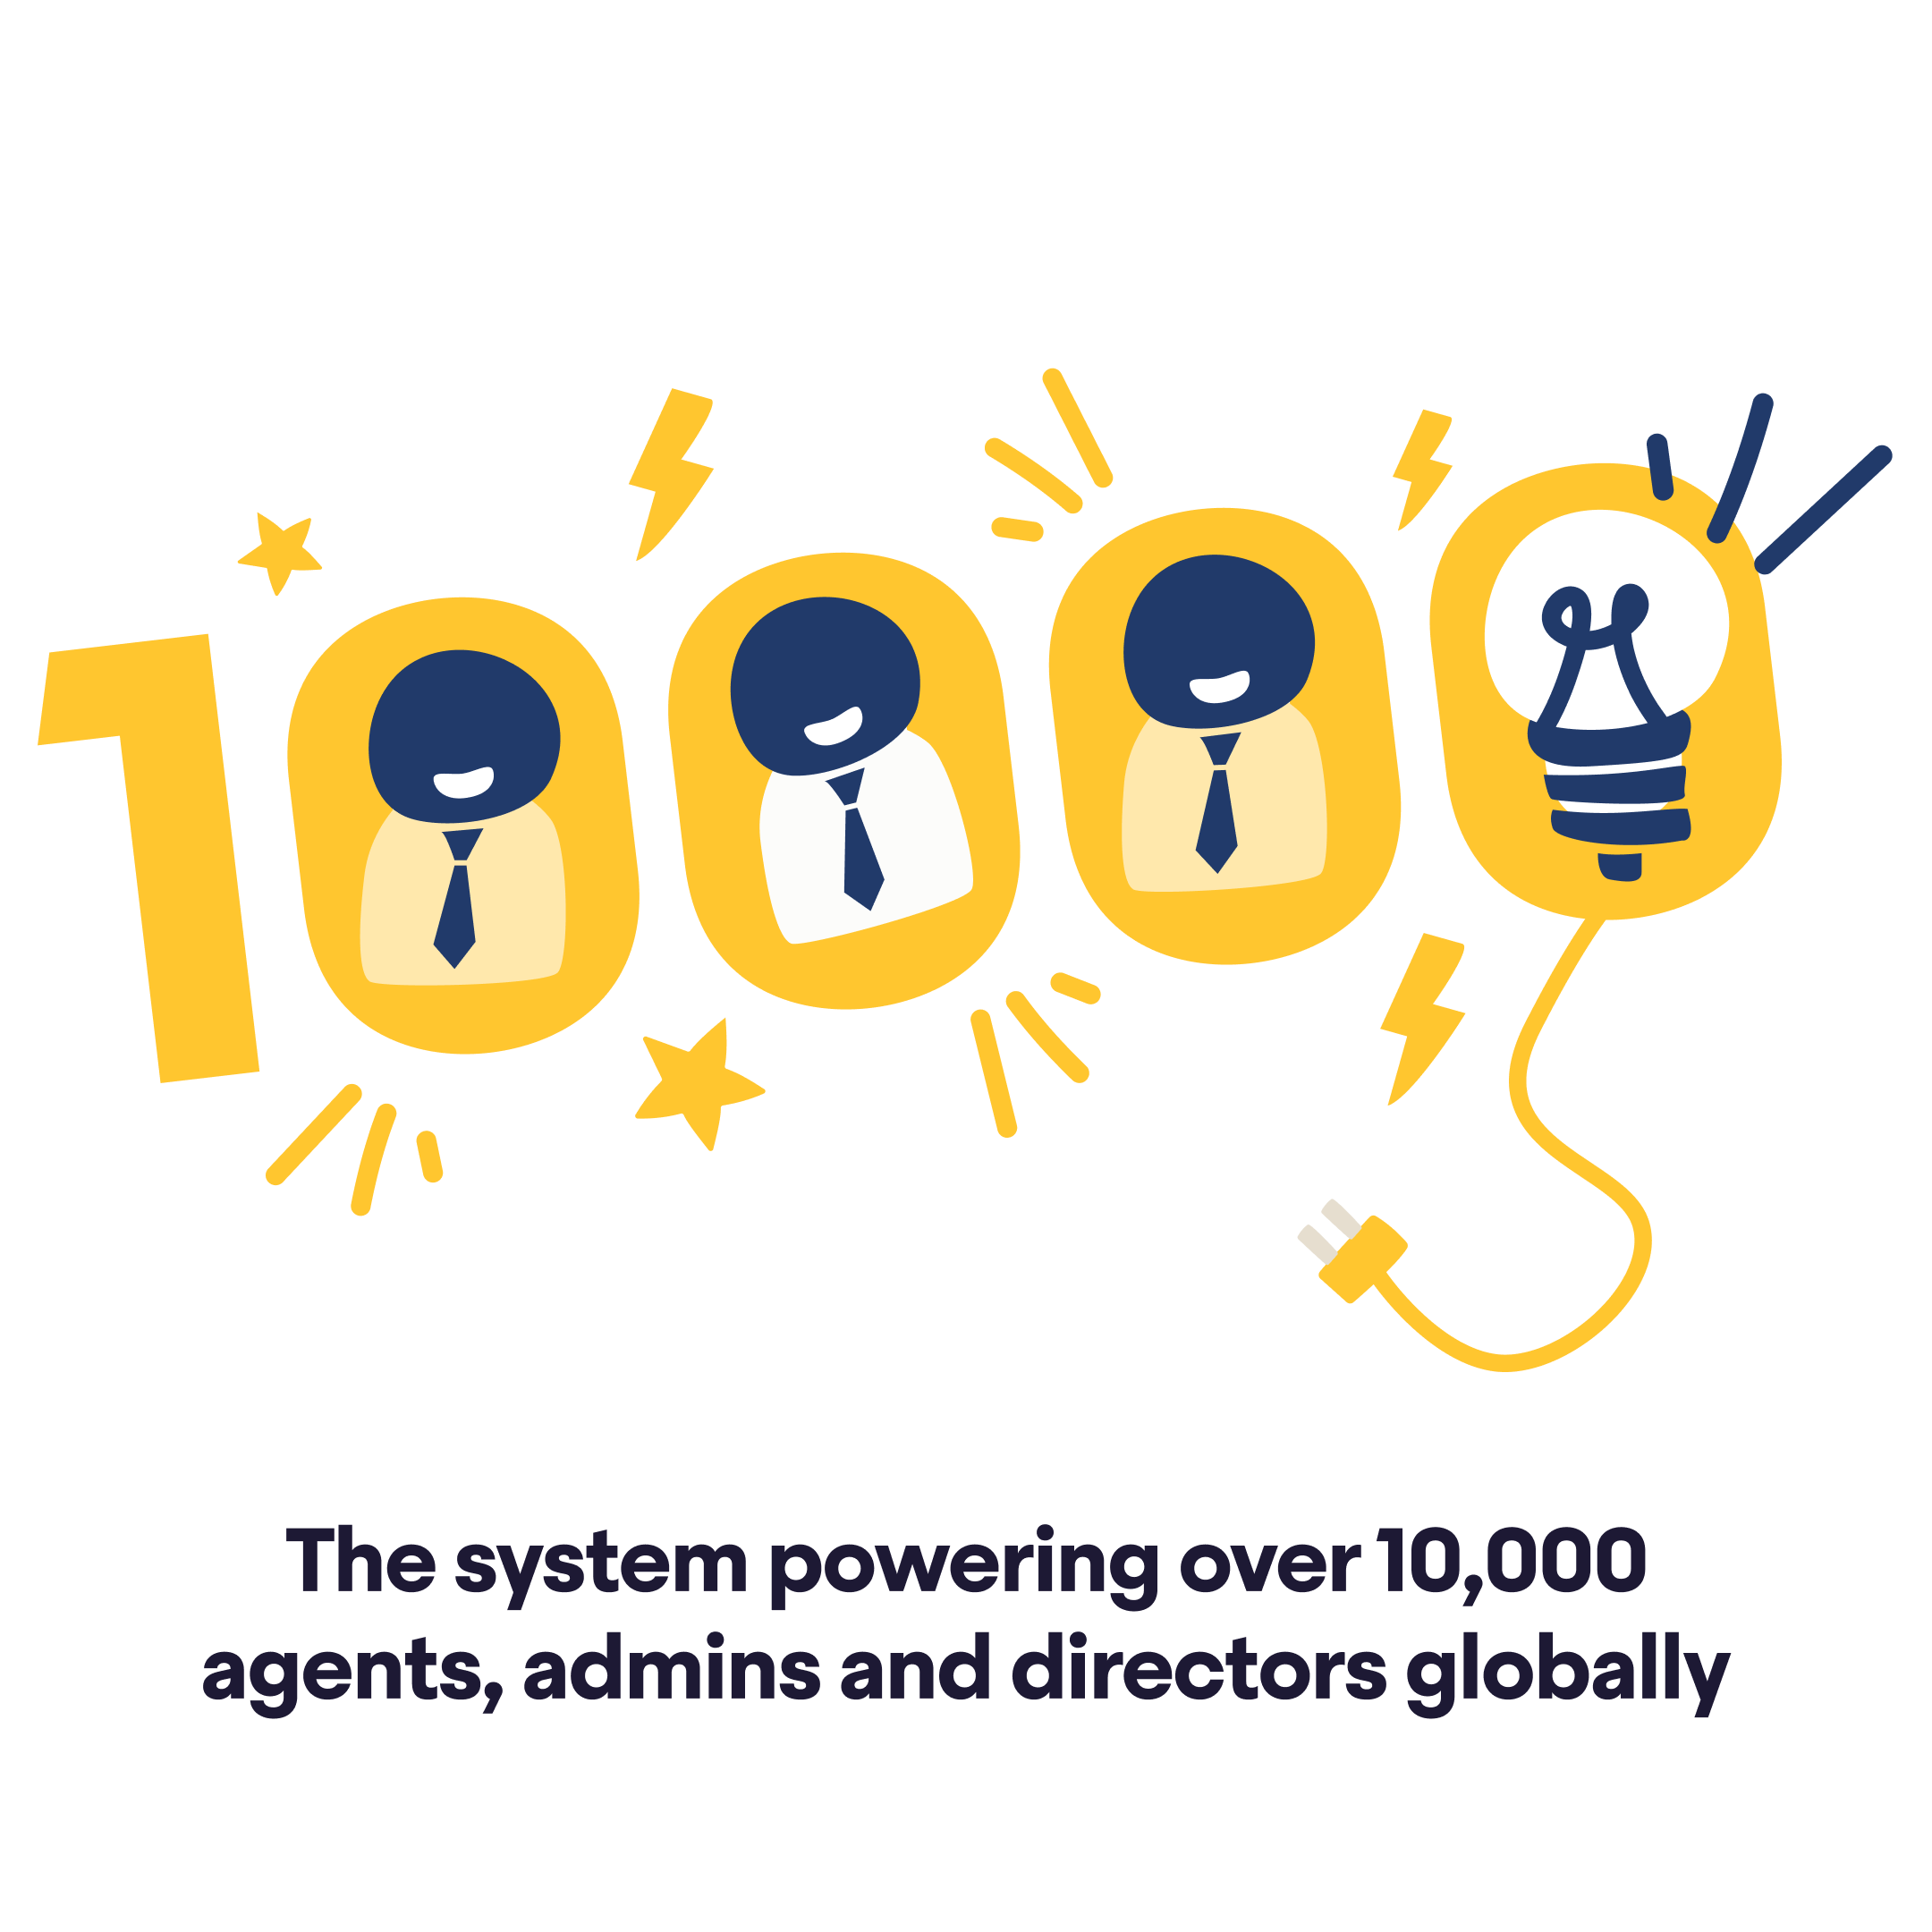 The system powering 10000 agents globally